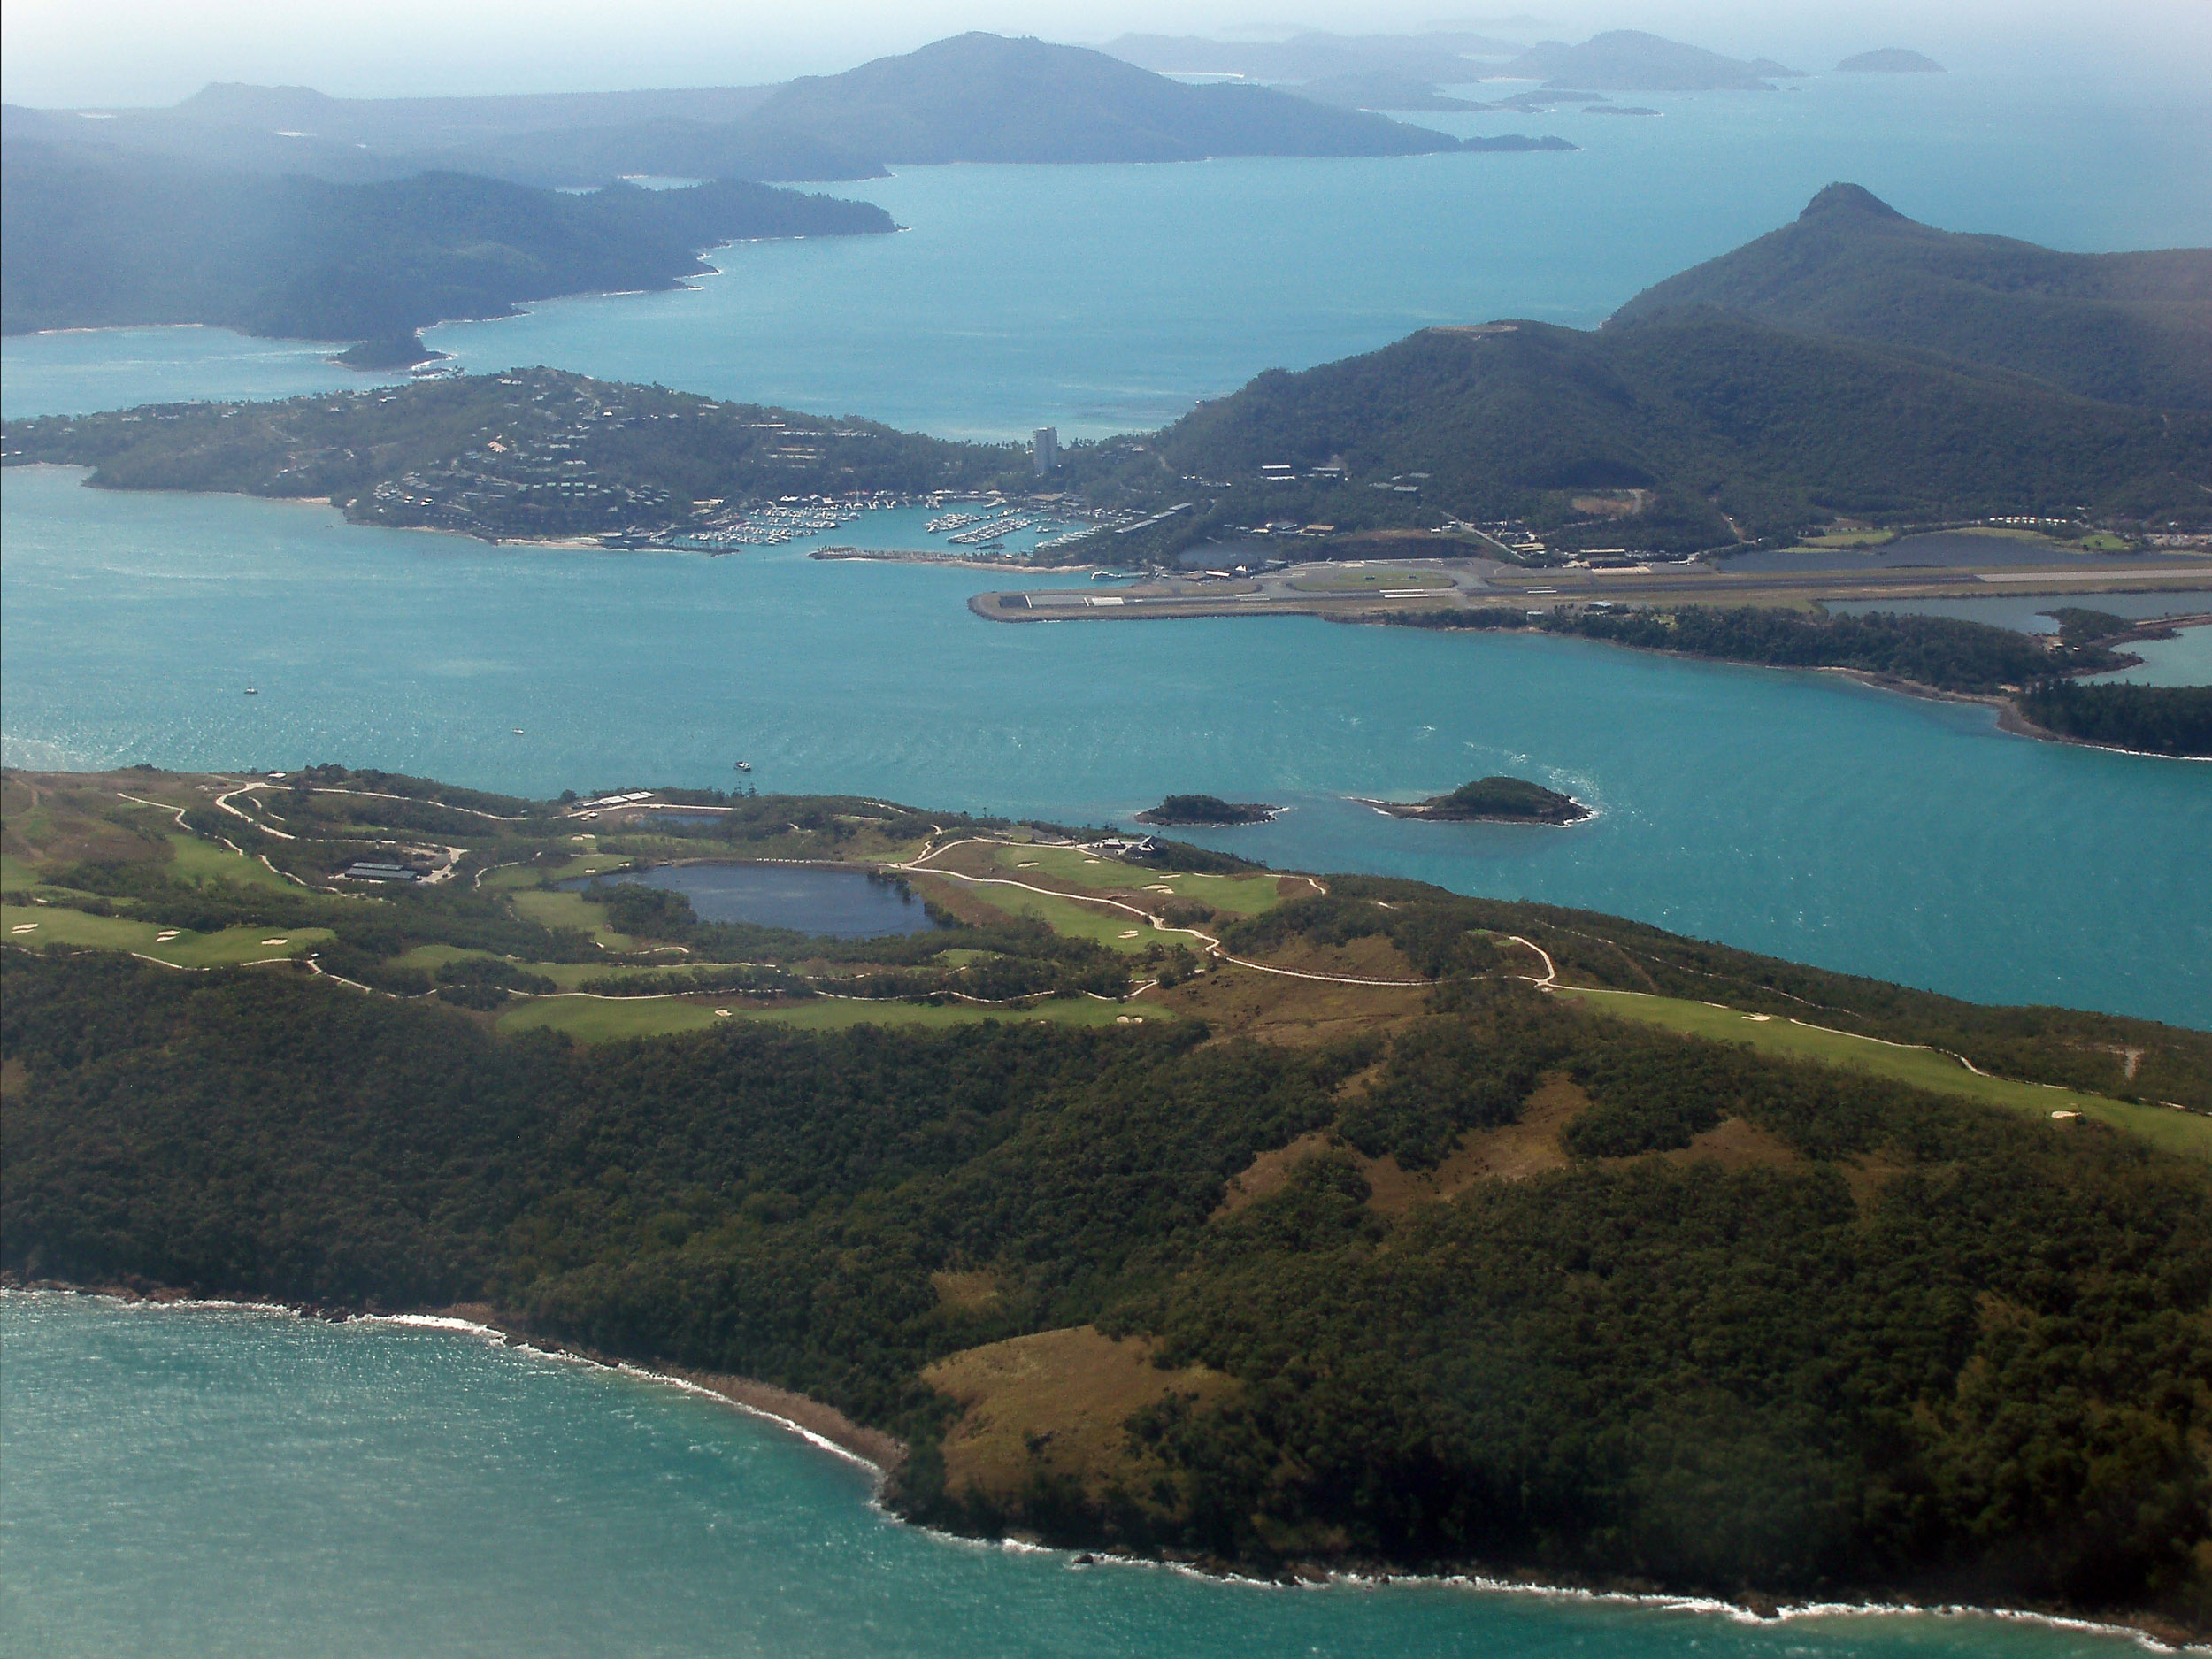 viewed from the air, dent island, hamilton island and whitsunday island to the rear in the whitsunday island group, queensland